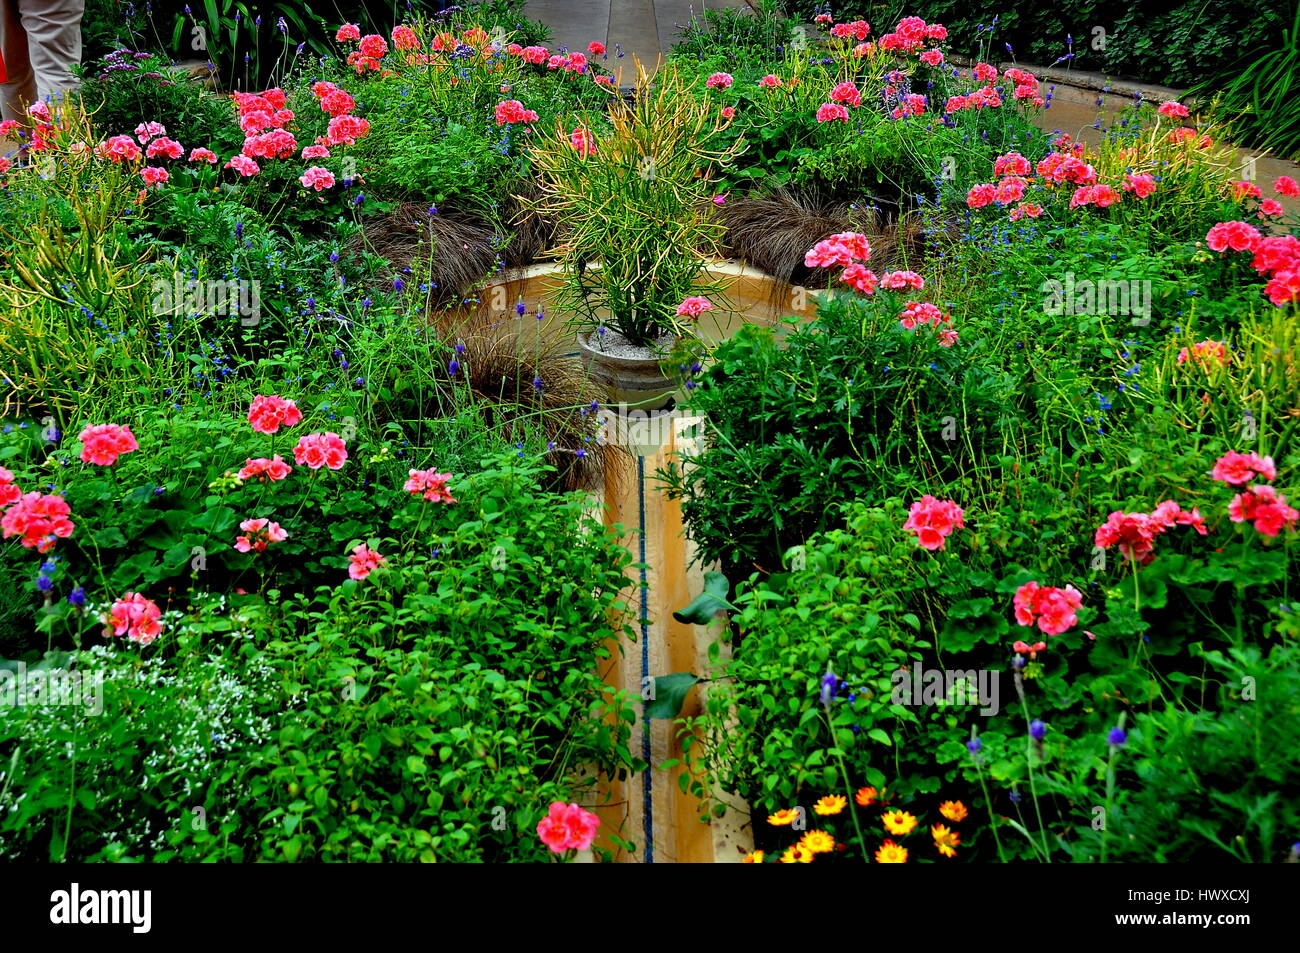 Kennett Square, Pennsylvania - JUne 3, 2015: Pink Geraniums encircle a small fountain in the Longwood Gardens Conservatory - Stock Image